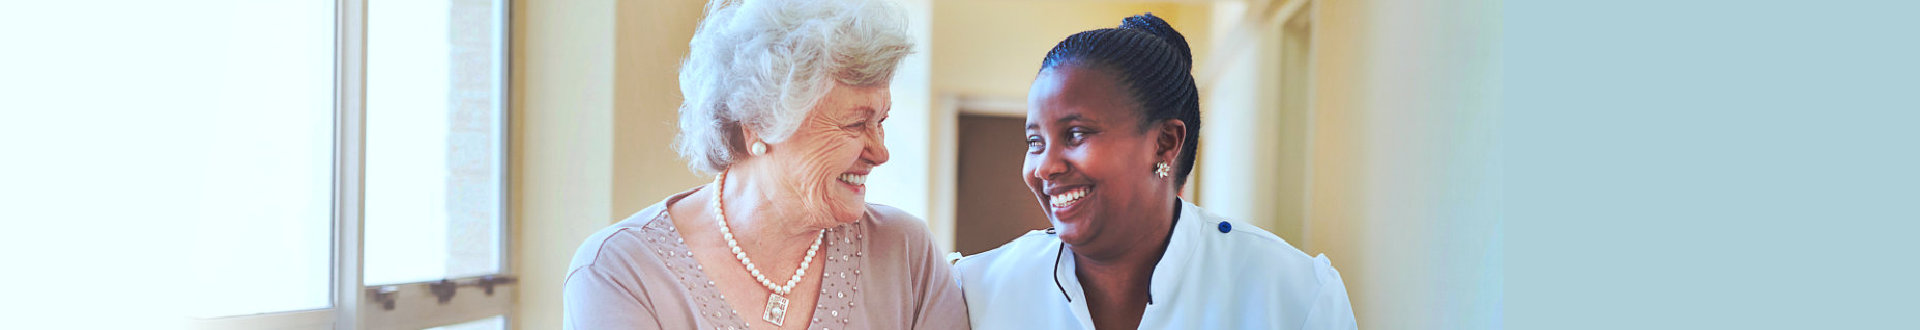 nurse and senior woman smiling to each other